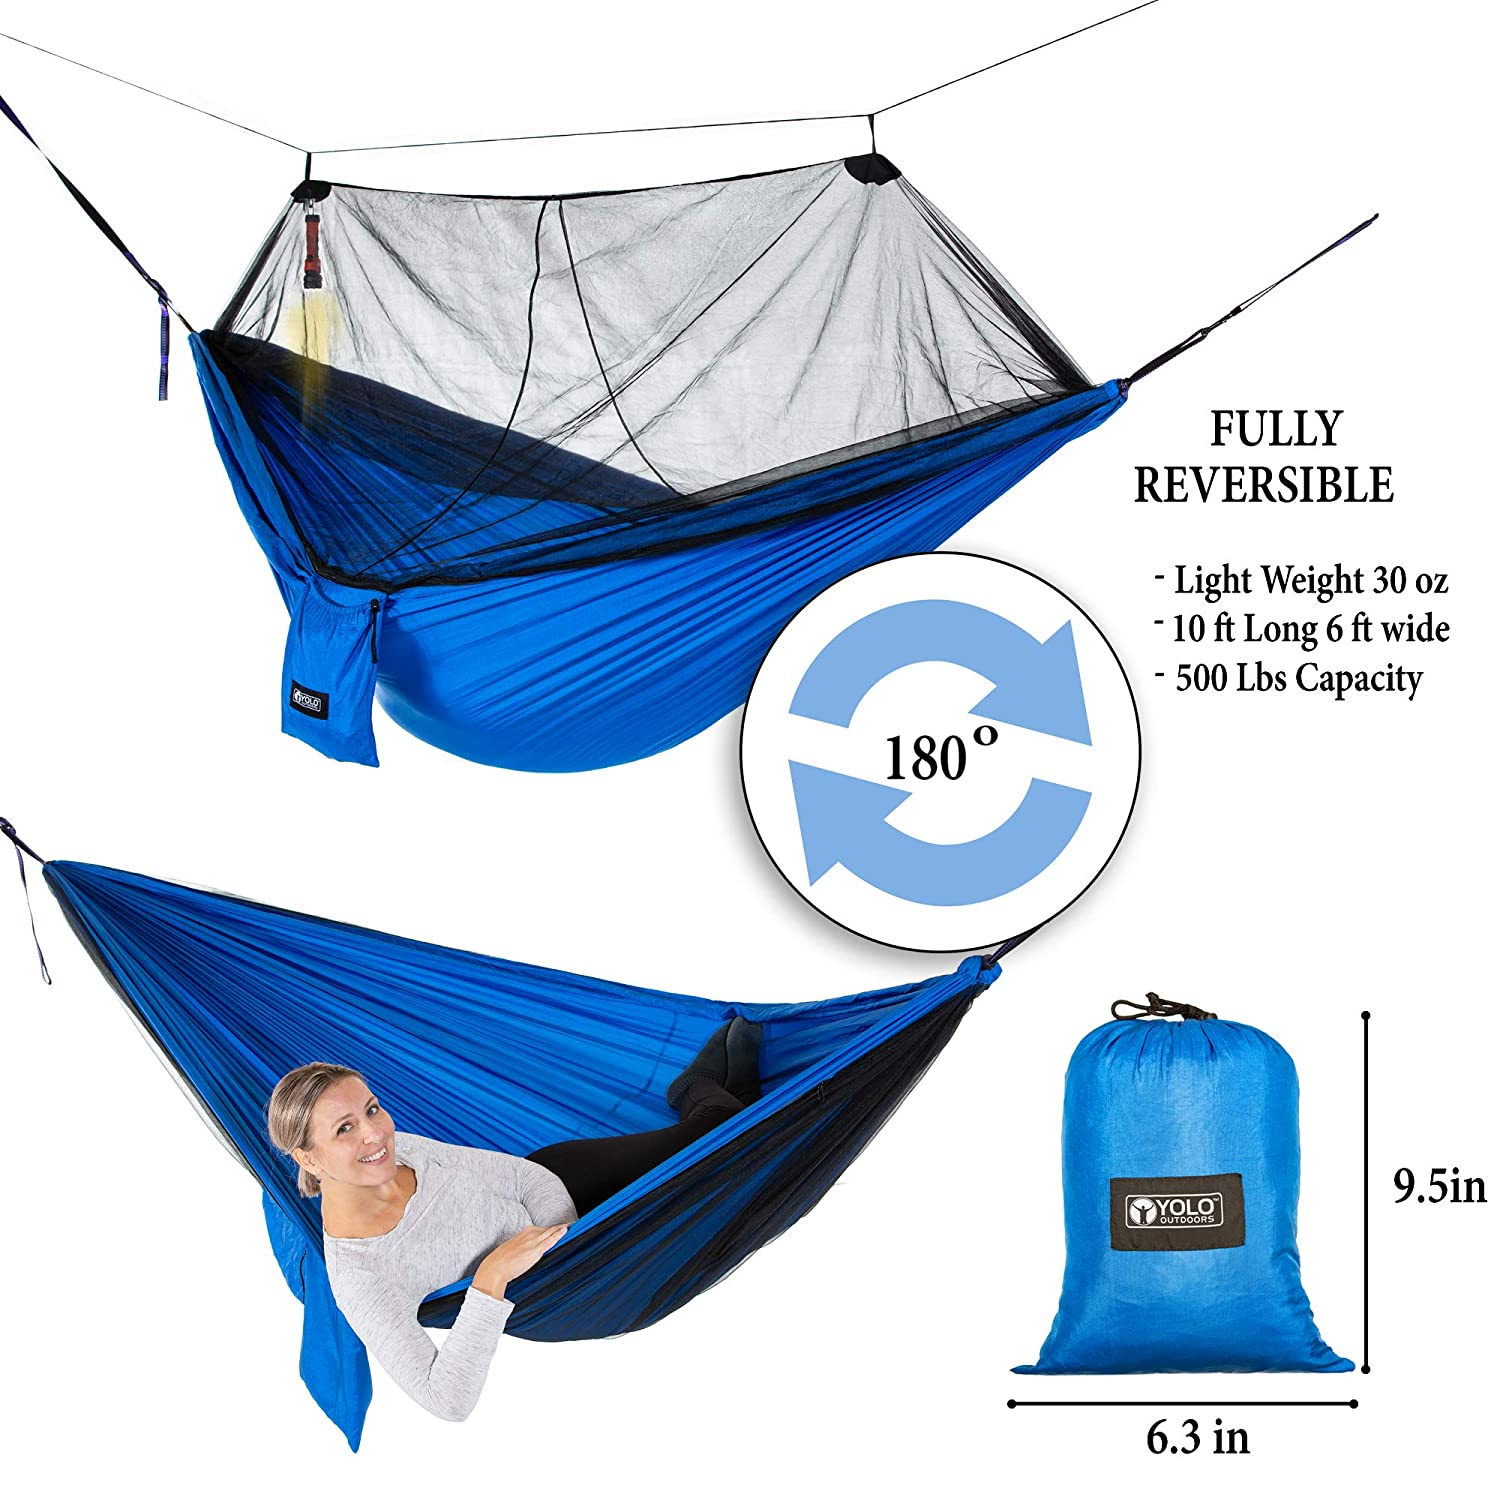 YOLO Outdoors Camping Hammock with Mosquito Net Double, Reversible, Portable, Lightweight Ripstop Parachute Nylon with 500 LBS Capacity Includes Tree Straps, Carabiner First Aid Kit